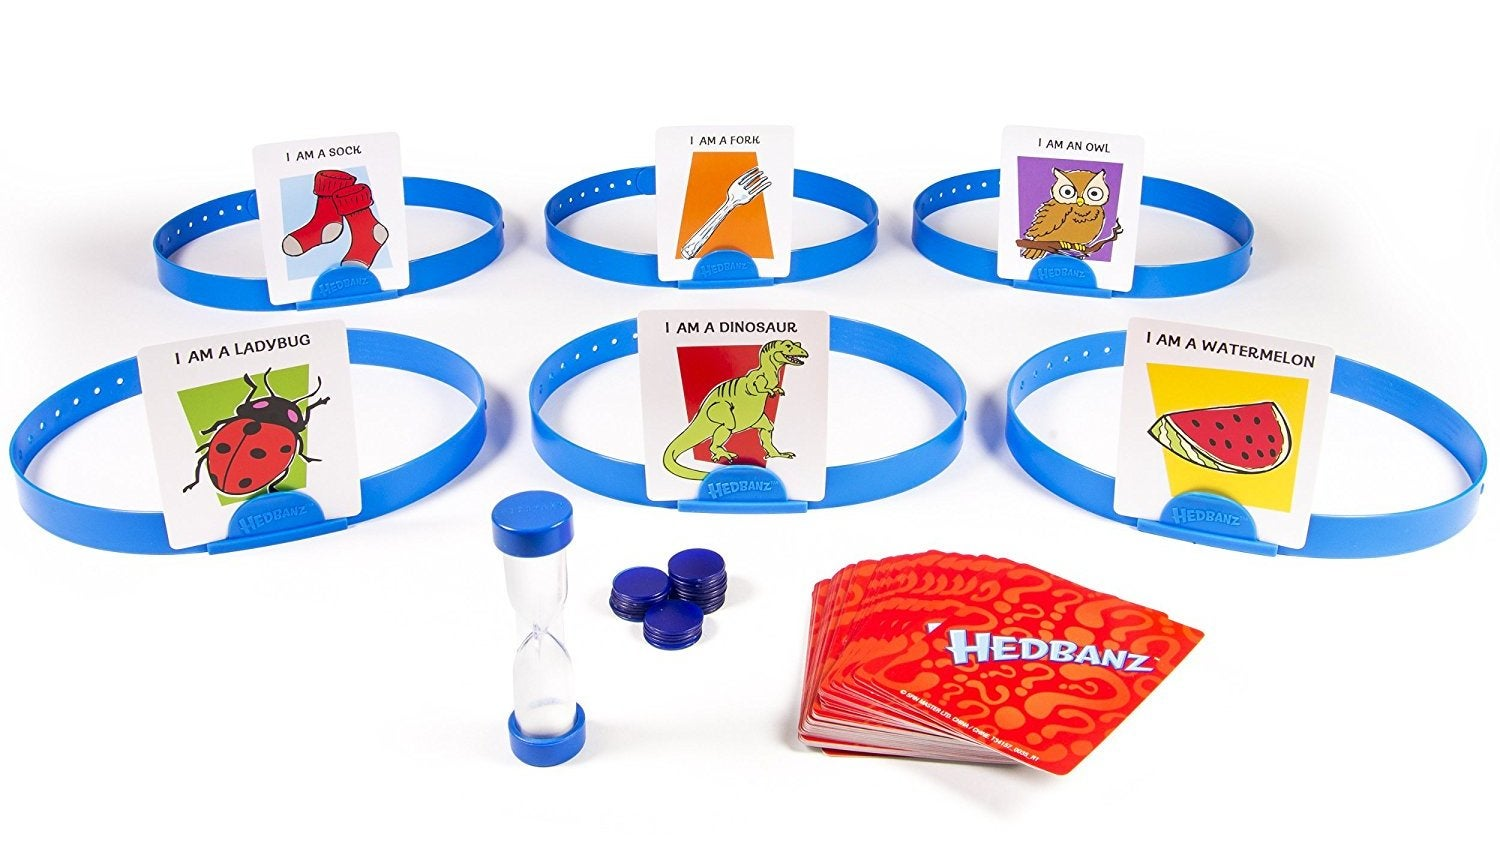 The Best Board Games For A Successful Family Game Night